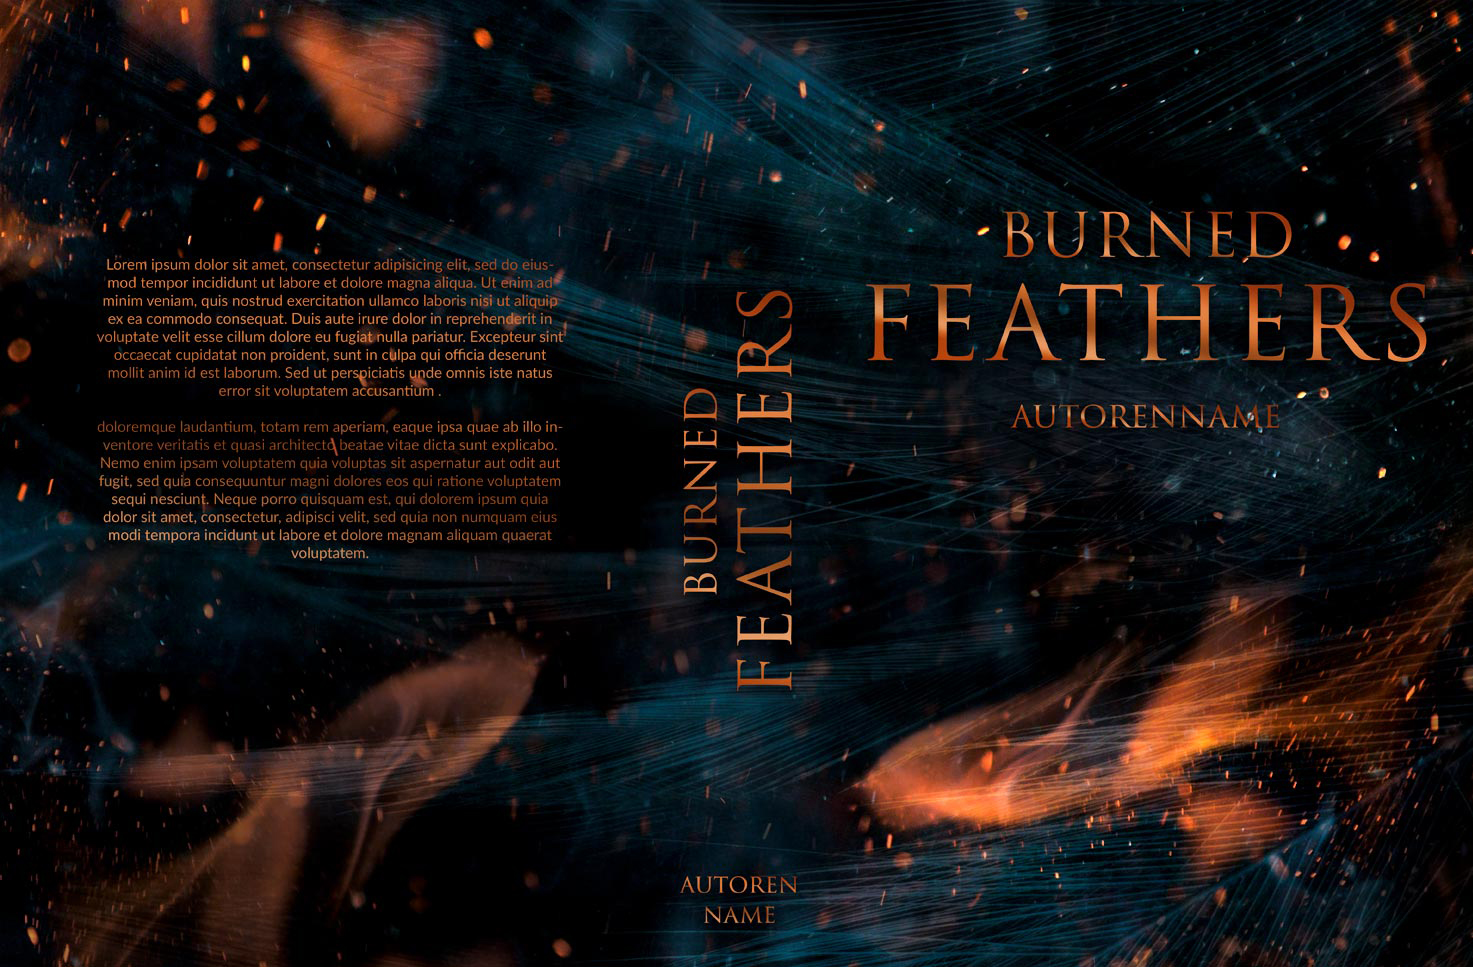 Burning Feathers Premade Cover